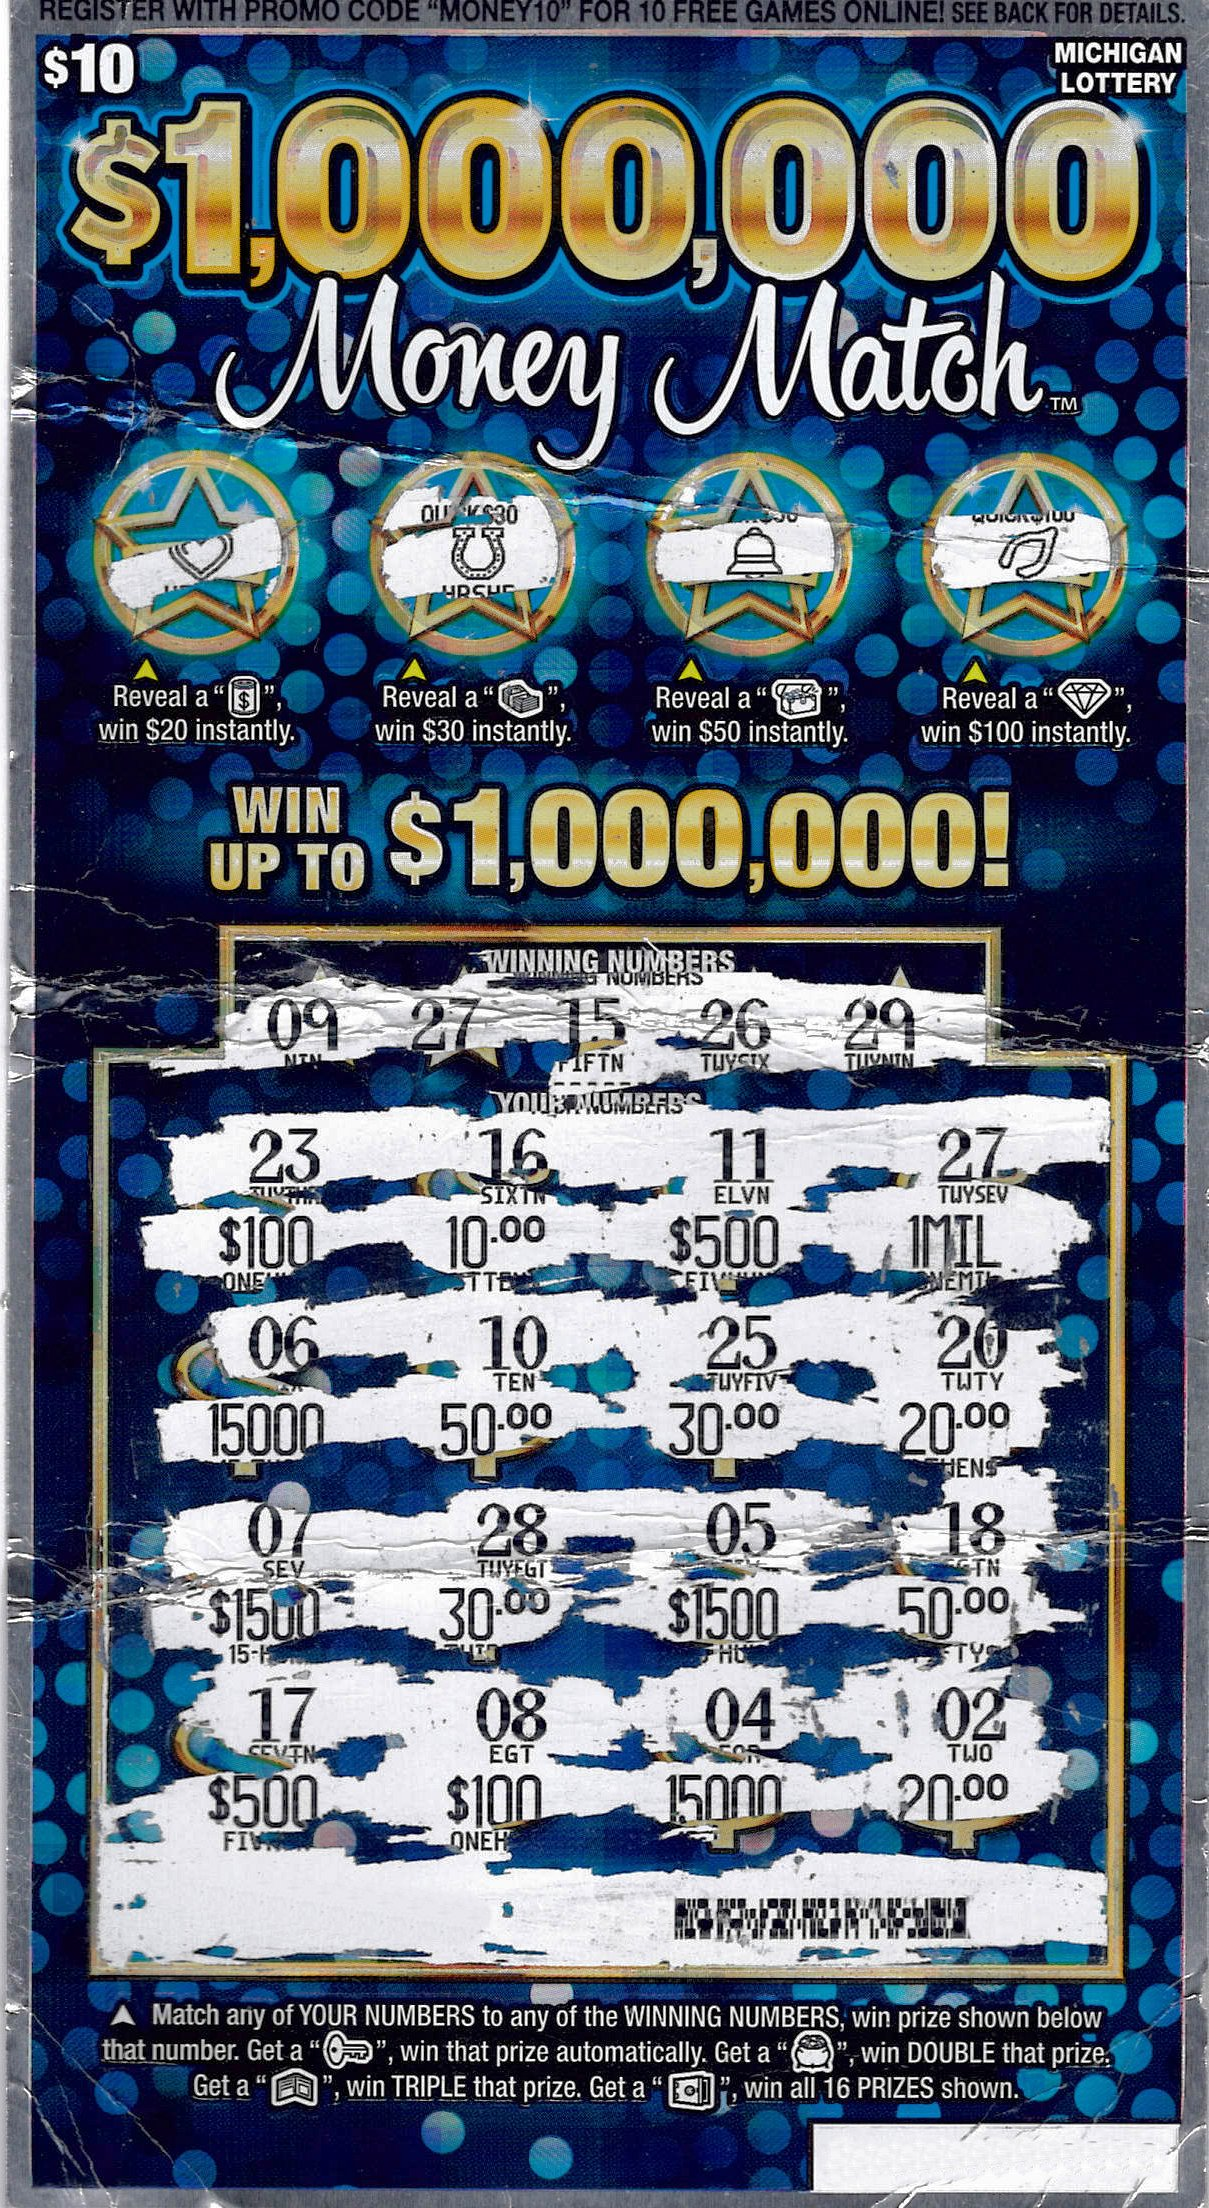 Macomb County Man Wins $1 Million Playing the Michigan